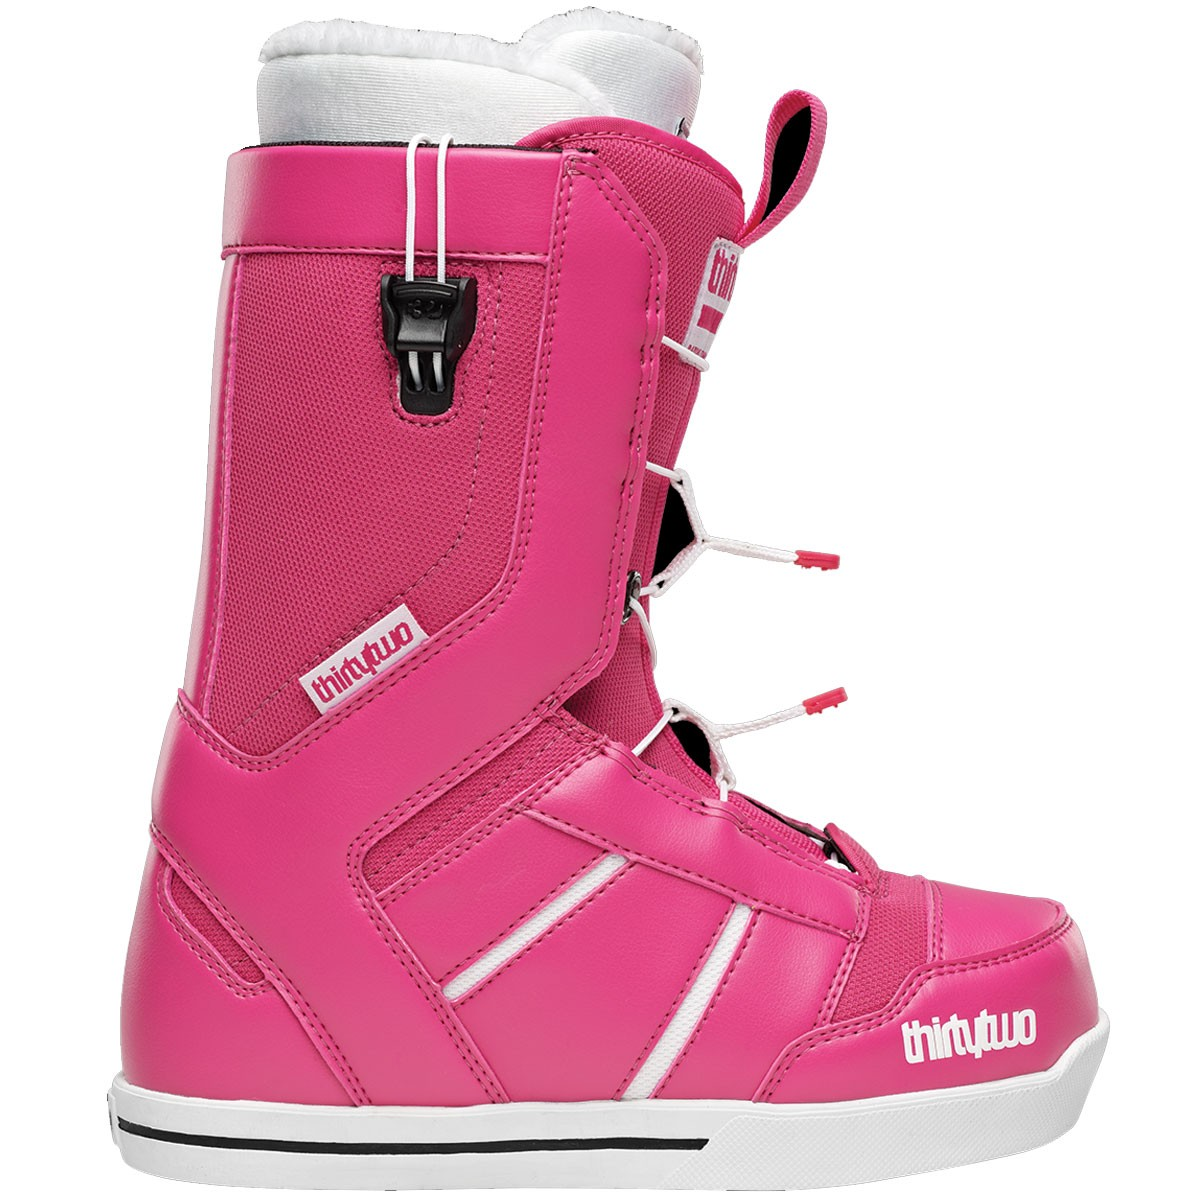 ThirtyTwo 86 FT Snowboard Boots - Women's 2014 - Pink